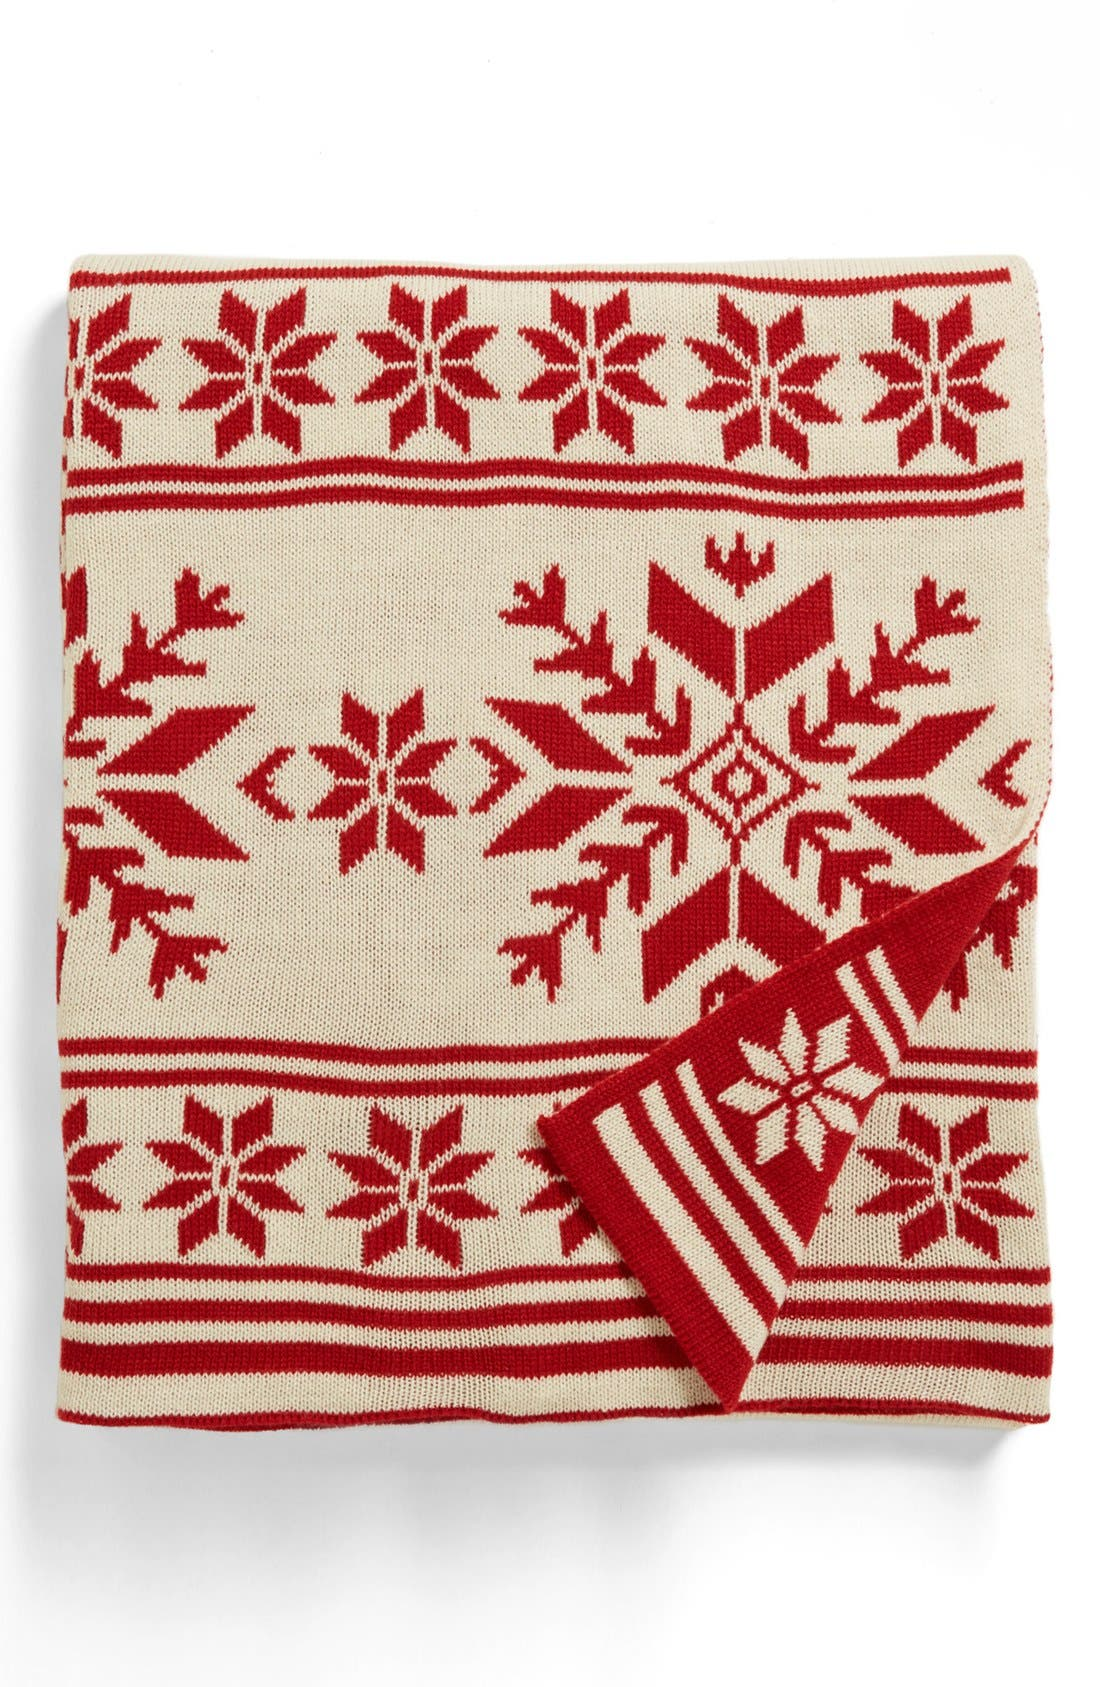 Alternate Image 1 Selected - Kennebunk Home 'Snowflake' Throw